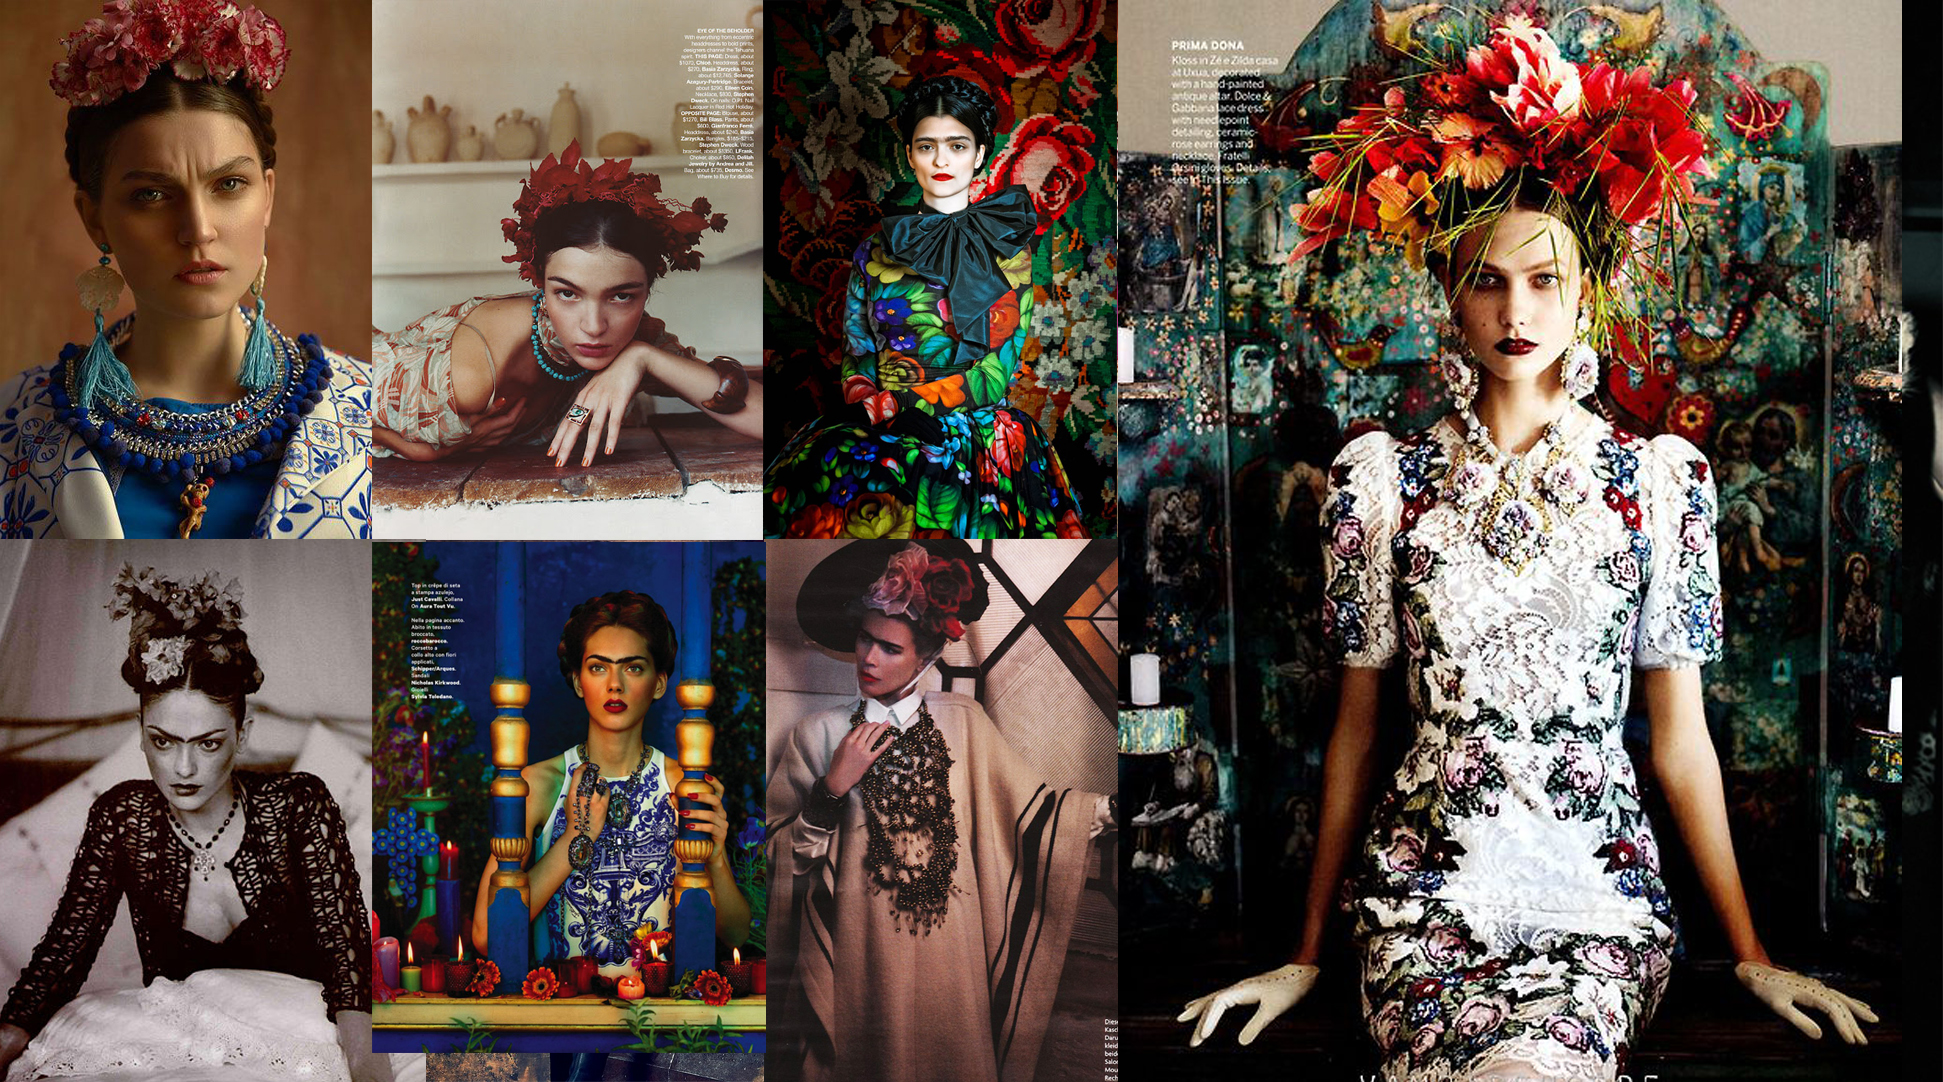 frida-khalo-editorials